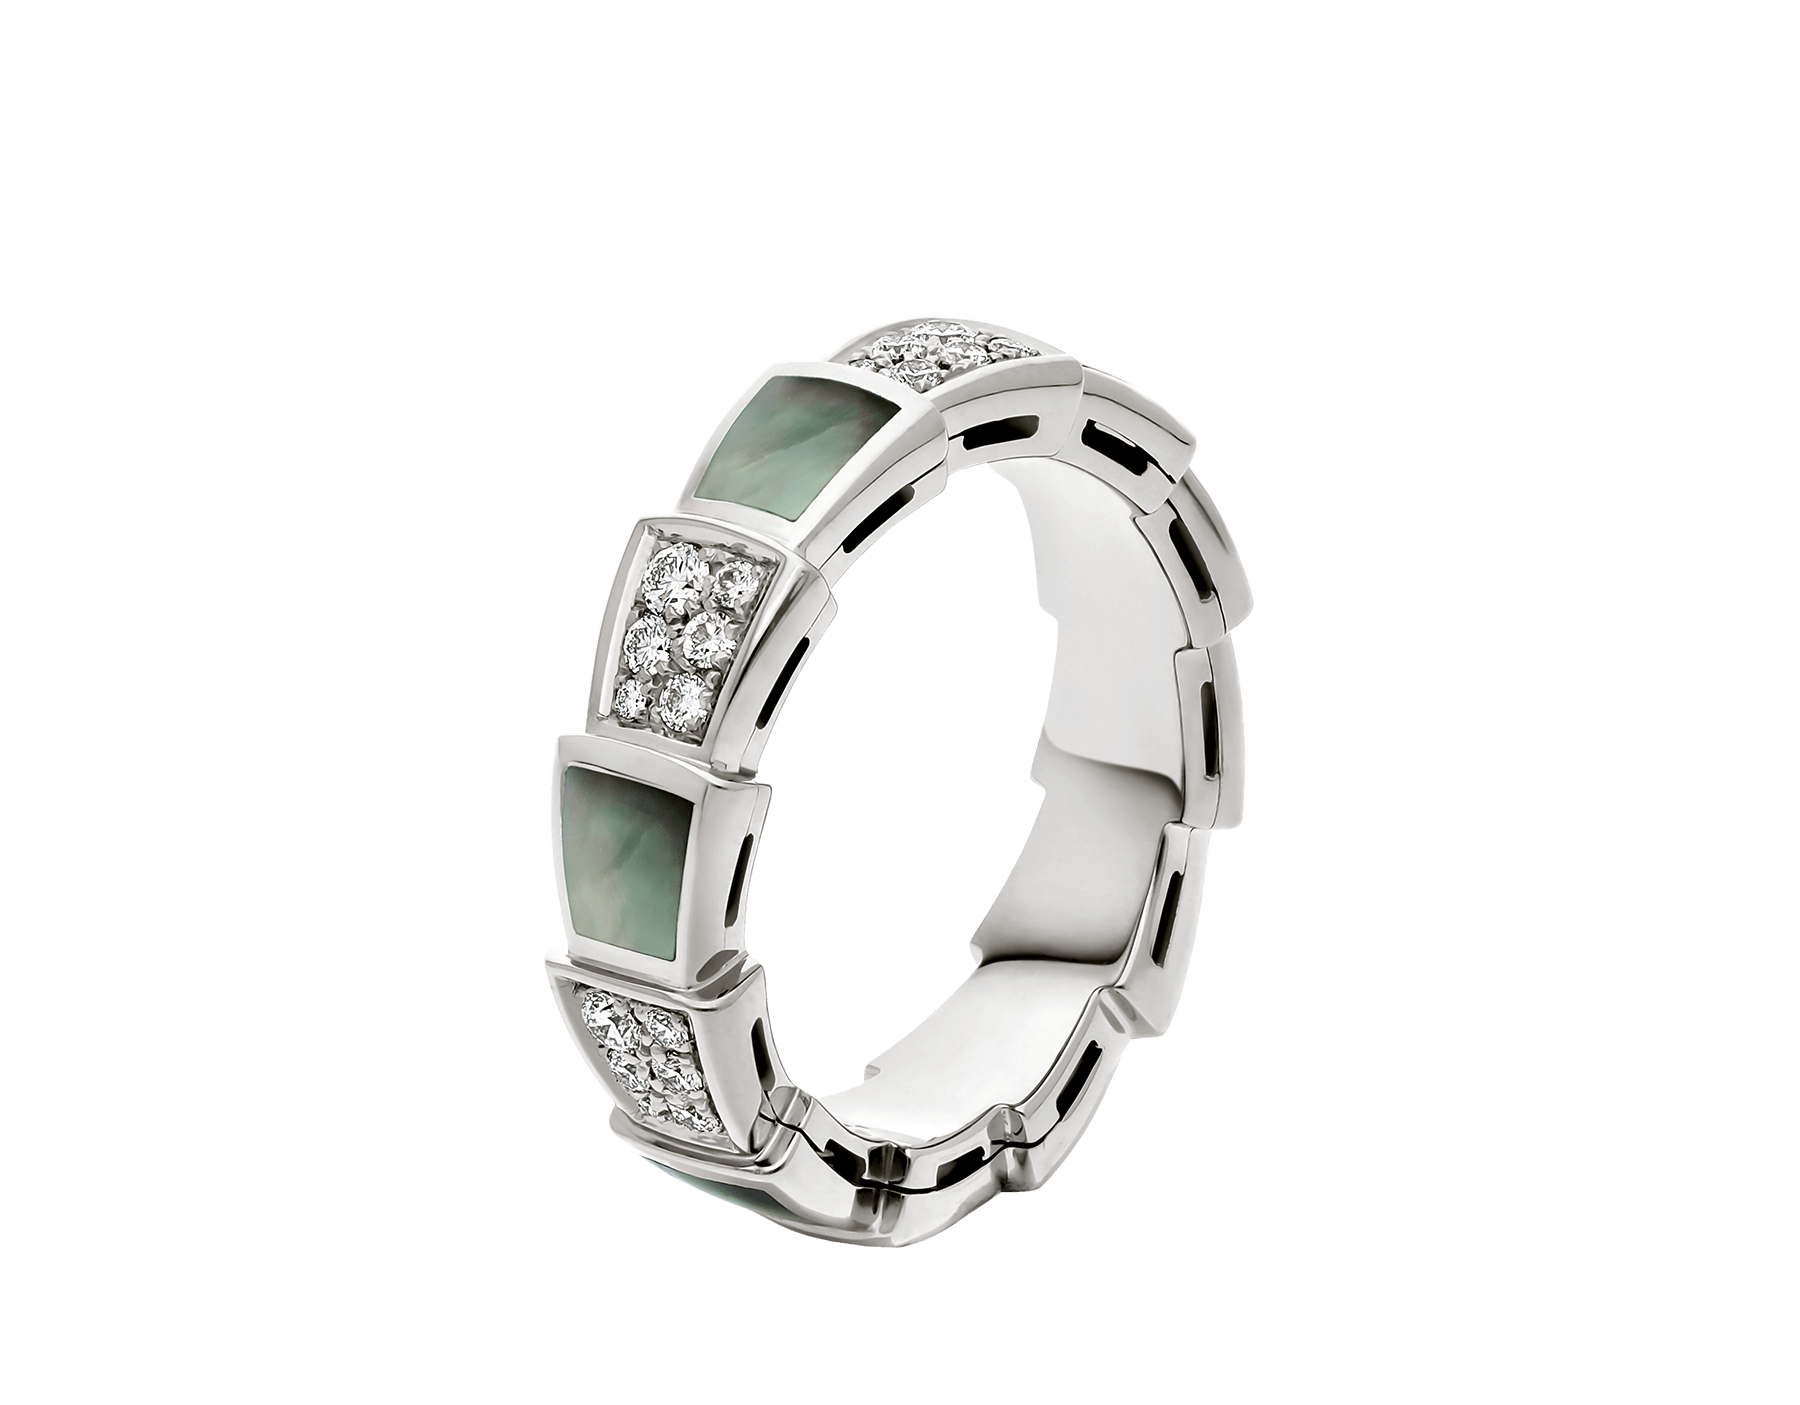 Serpenti Viper band ring in 18 kt white gold set with grey mother-of-pearl elements and pavé diamonds . AN857900 image 1